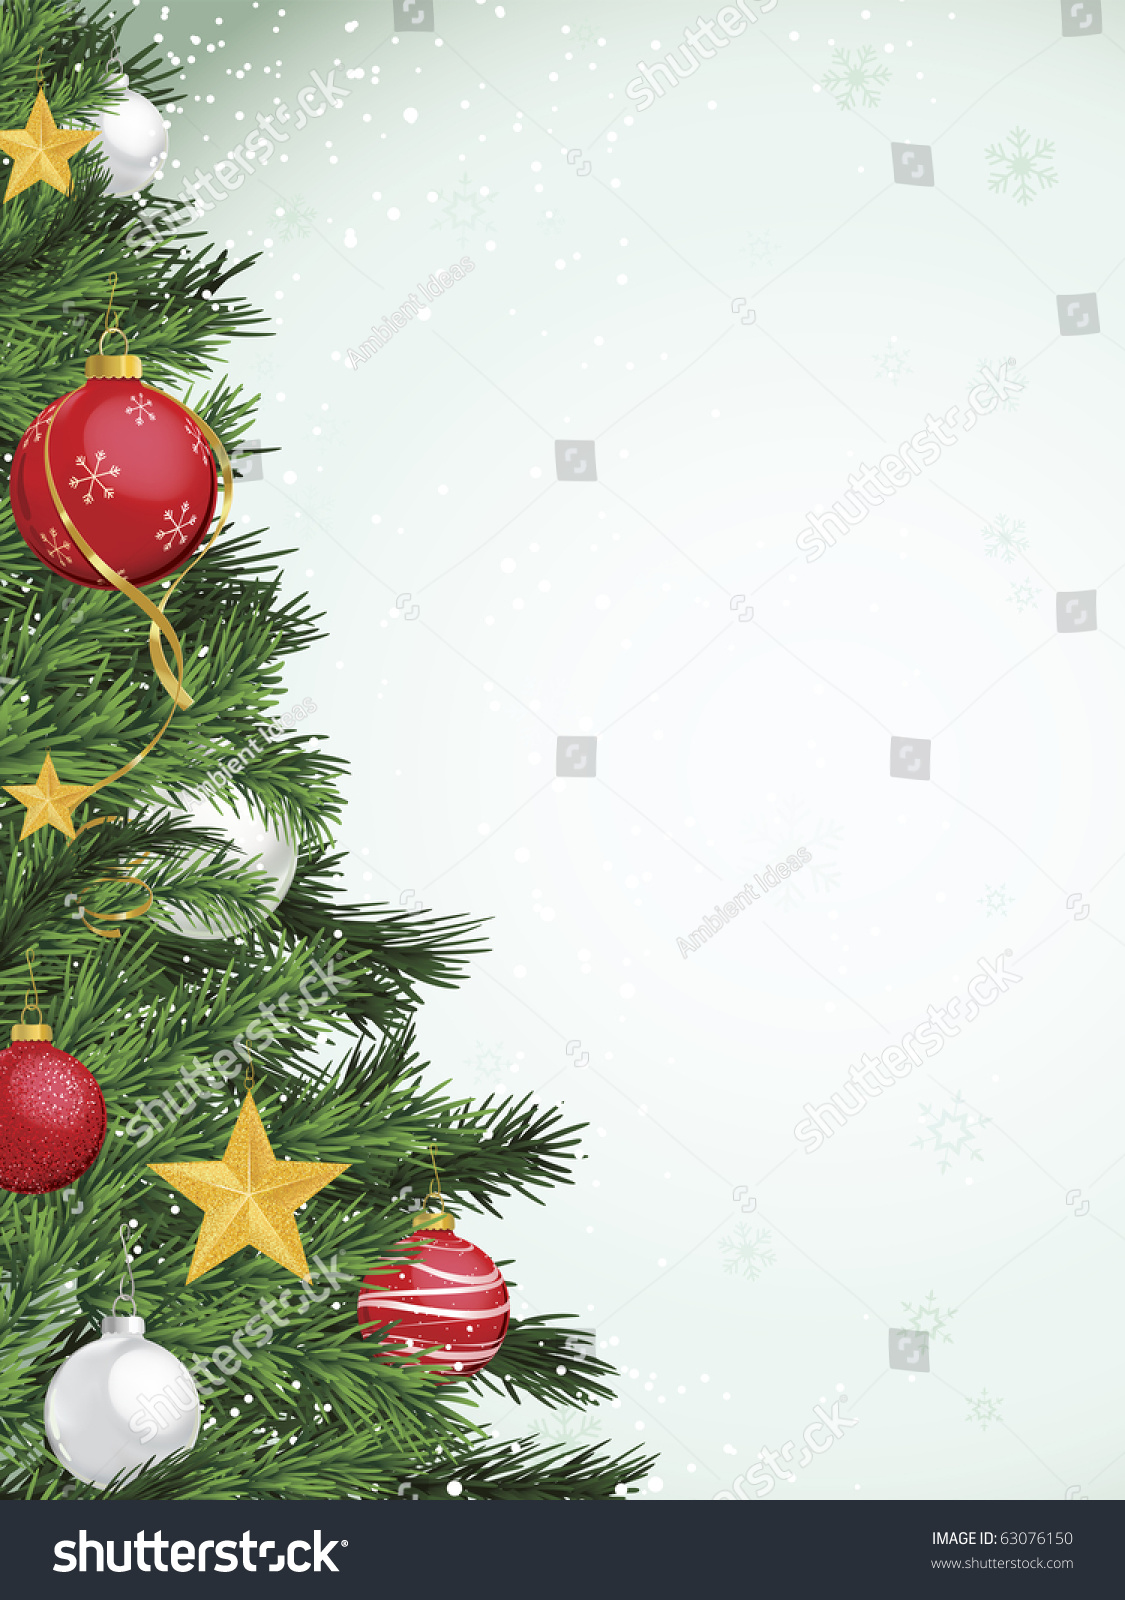 Christmas tree border design yellow gold stock vector for Red and yellow christmas tree